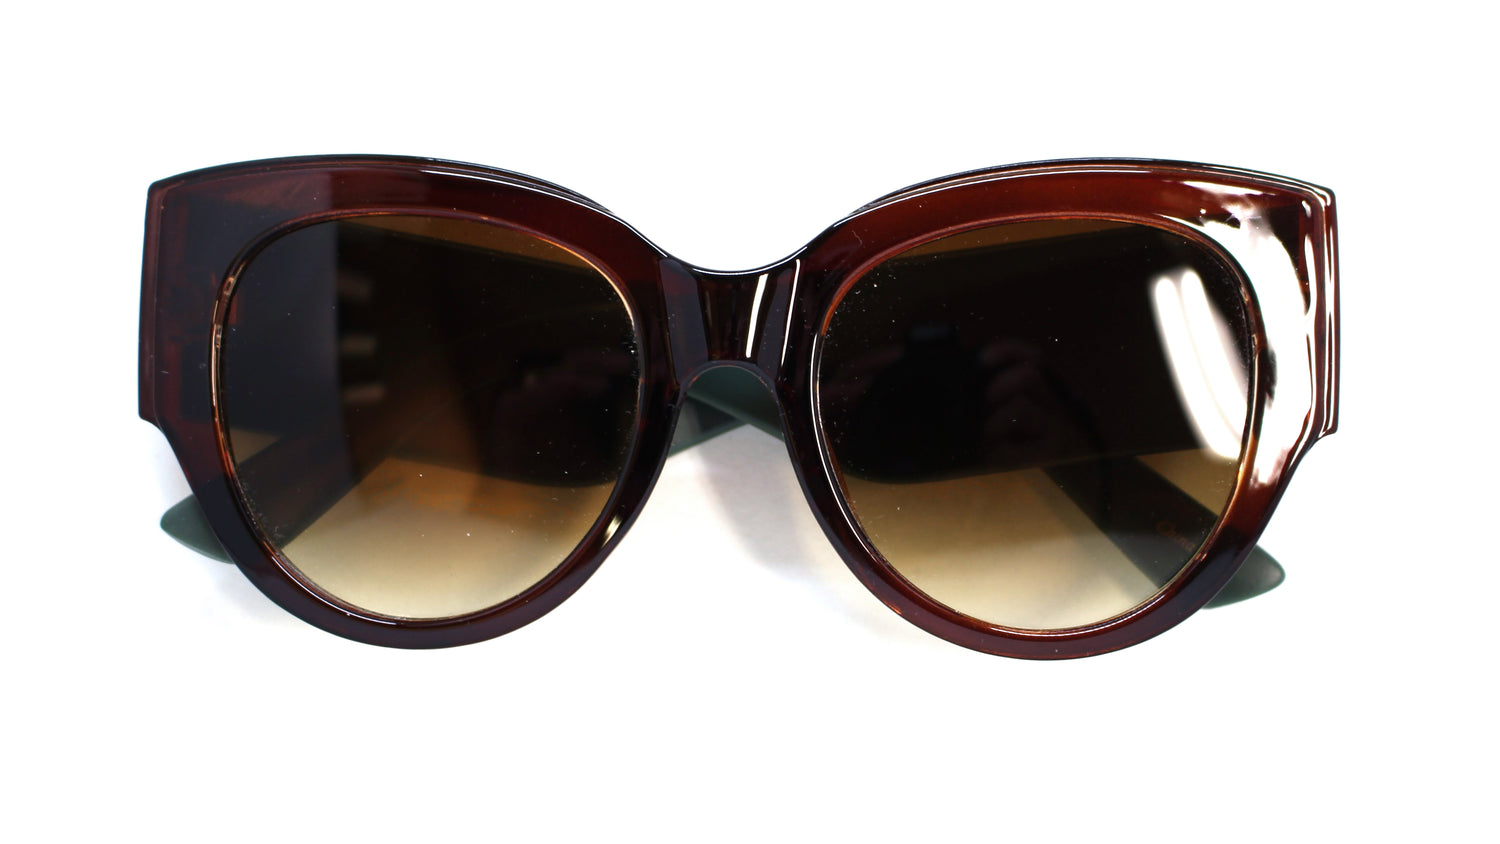 Evie Striped Cat Eye Sunglasses- Brown/Green